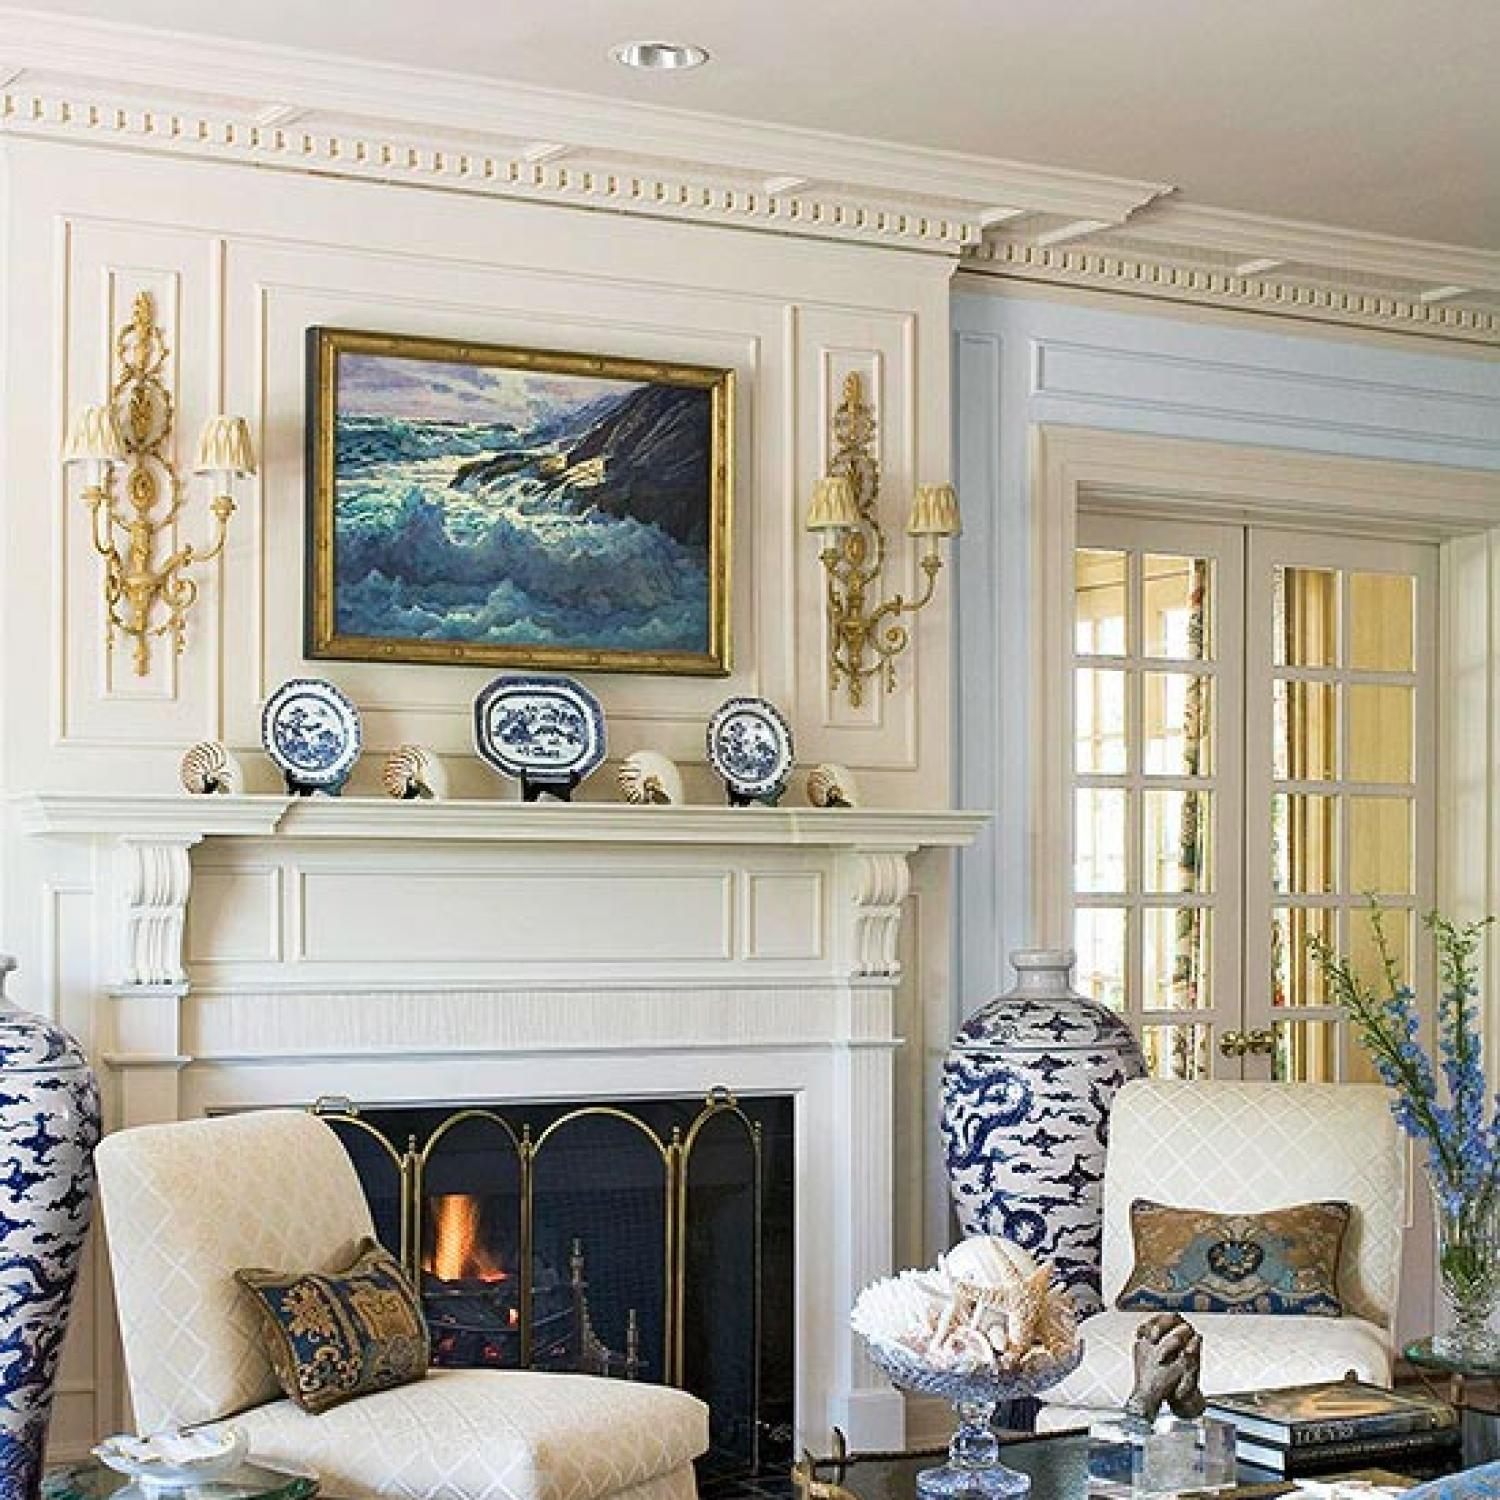 Get The Look: Classic Mantels